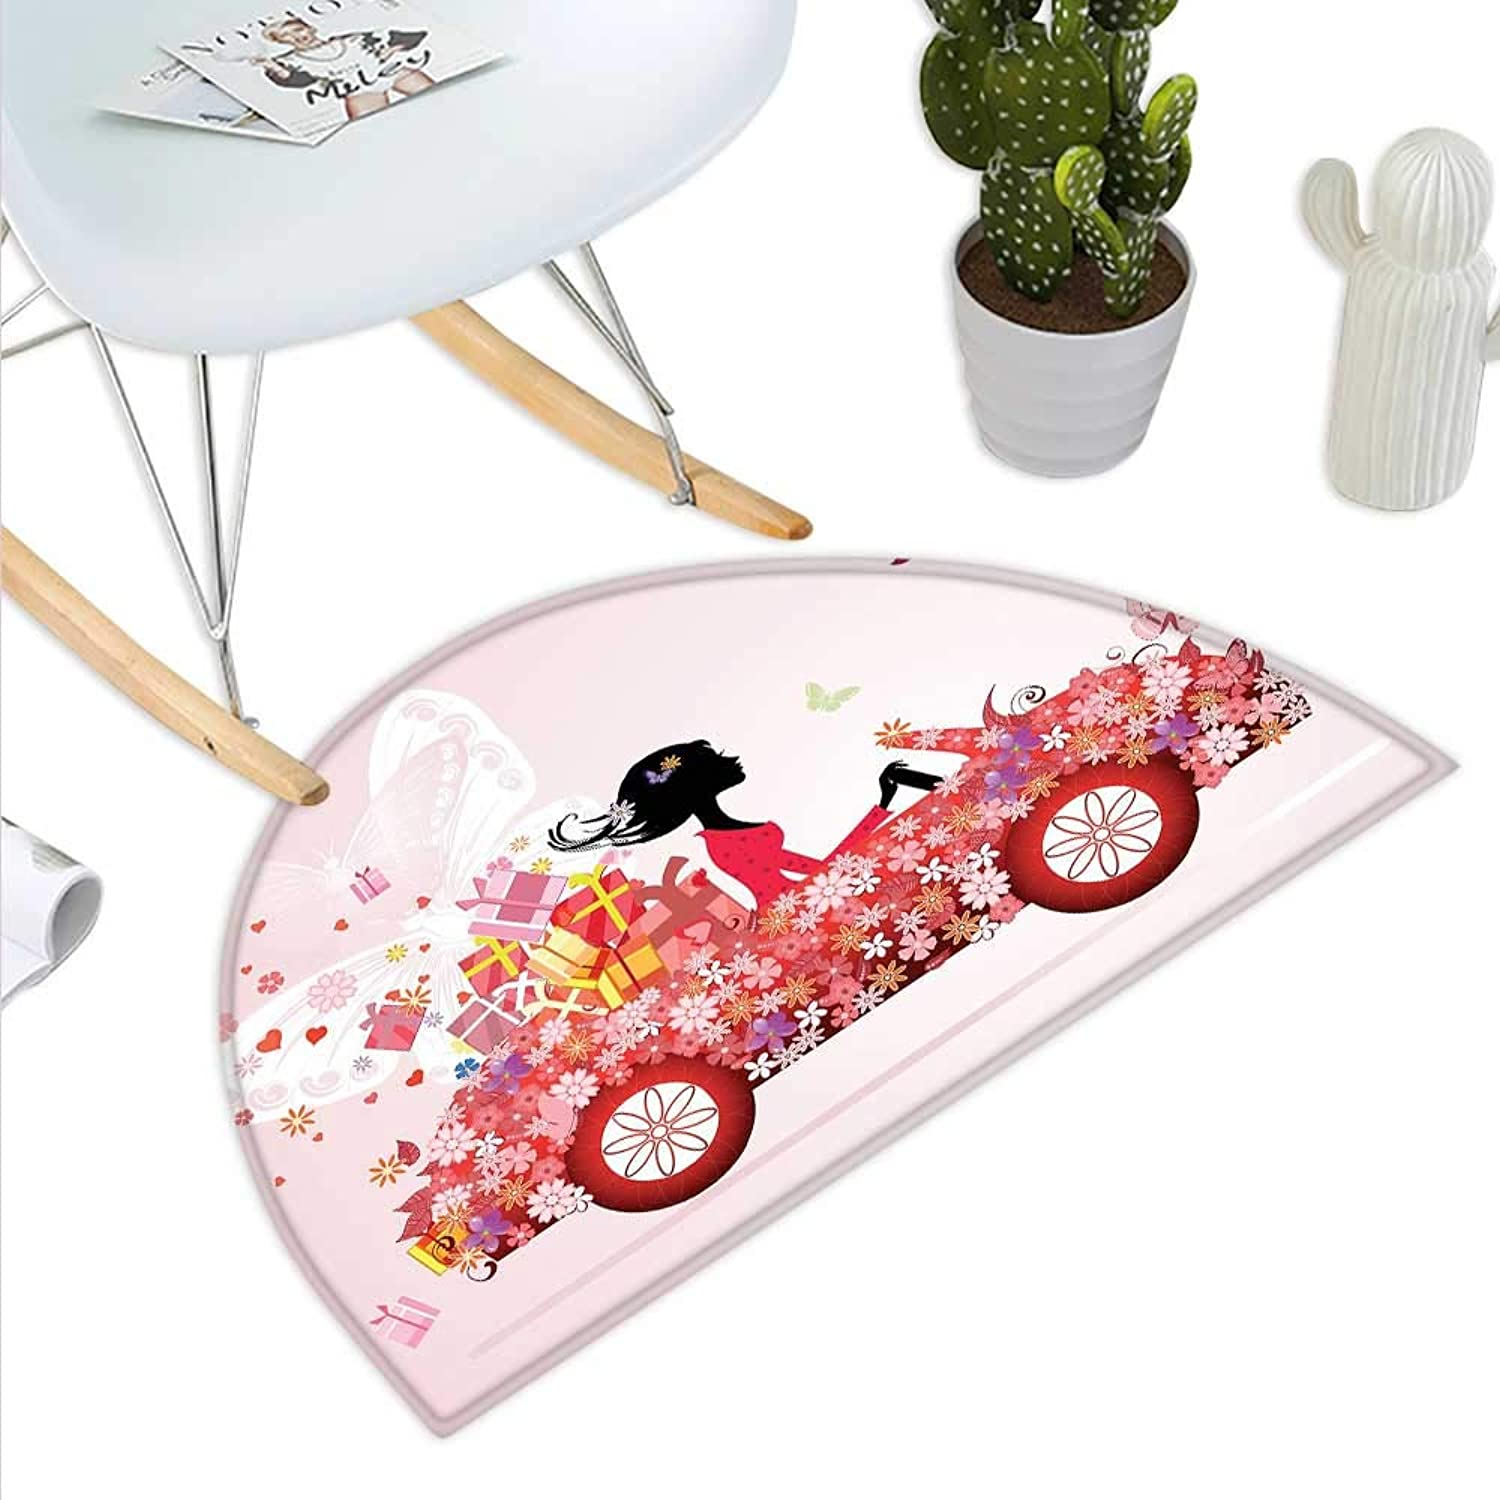 Cars Semicircle Doormat Girl on a Car with Floral Present Boxes Butterflies Daisies Little Hearts Halfmoon doormats H 43.3  xD 64.9  Pink Dark Coral Black